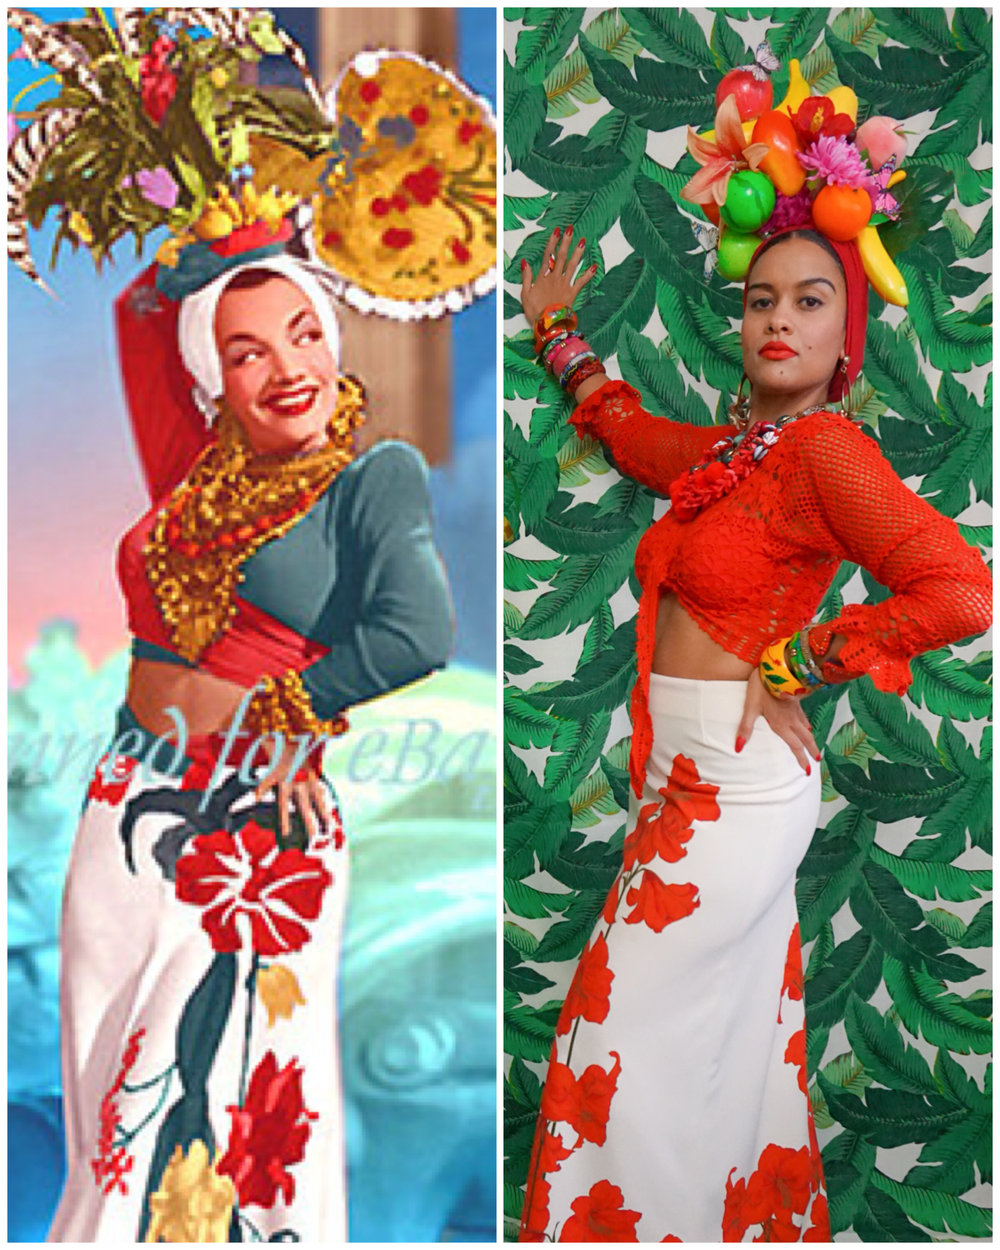 46f7c2538da DIY HALLOWEEN COSTUME -CARMEN MIRANDA   THE TUTTTI FRUTTI HAT ...